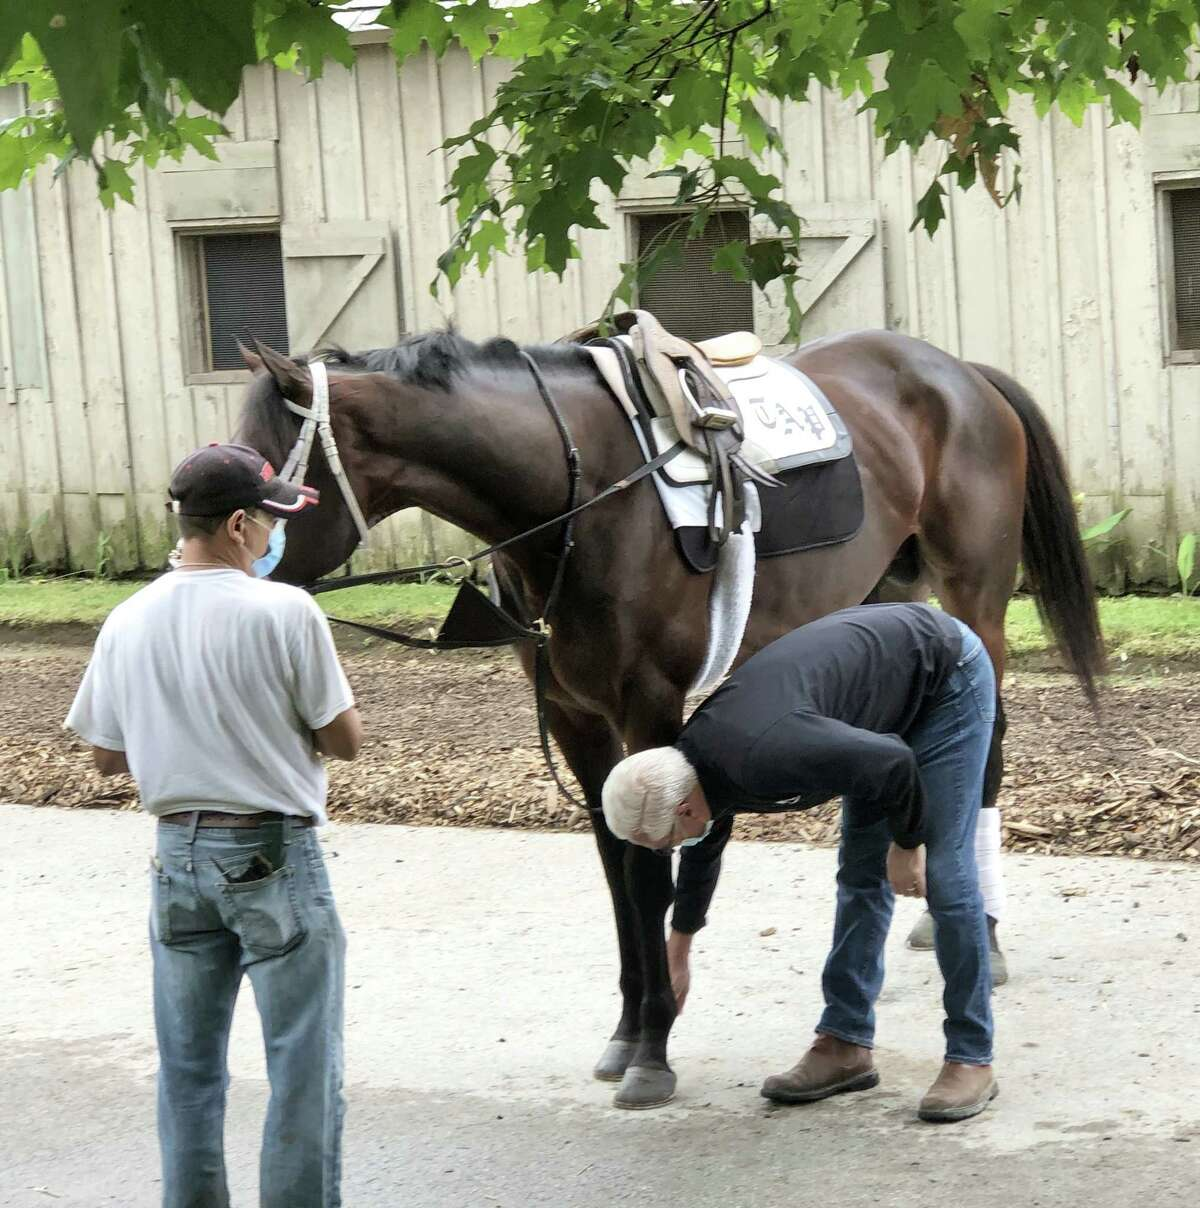 This is what trainer Todd Pletcher does every day. Before he sends any of his horses out to train or work, he checks their legs to make sure there is nothing wrong. That is what he is doing here. Before a set of horses left his barn on the Oklahoma Training Track on Wednesday morning, they all had to pass the Todd test. All of them did and off they went. Safety first, always. (Tim Wilkin / Times Union)